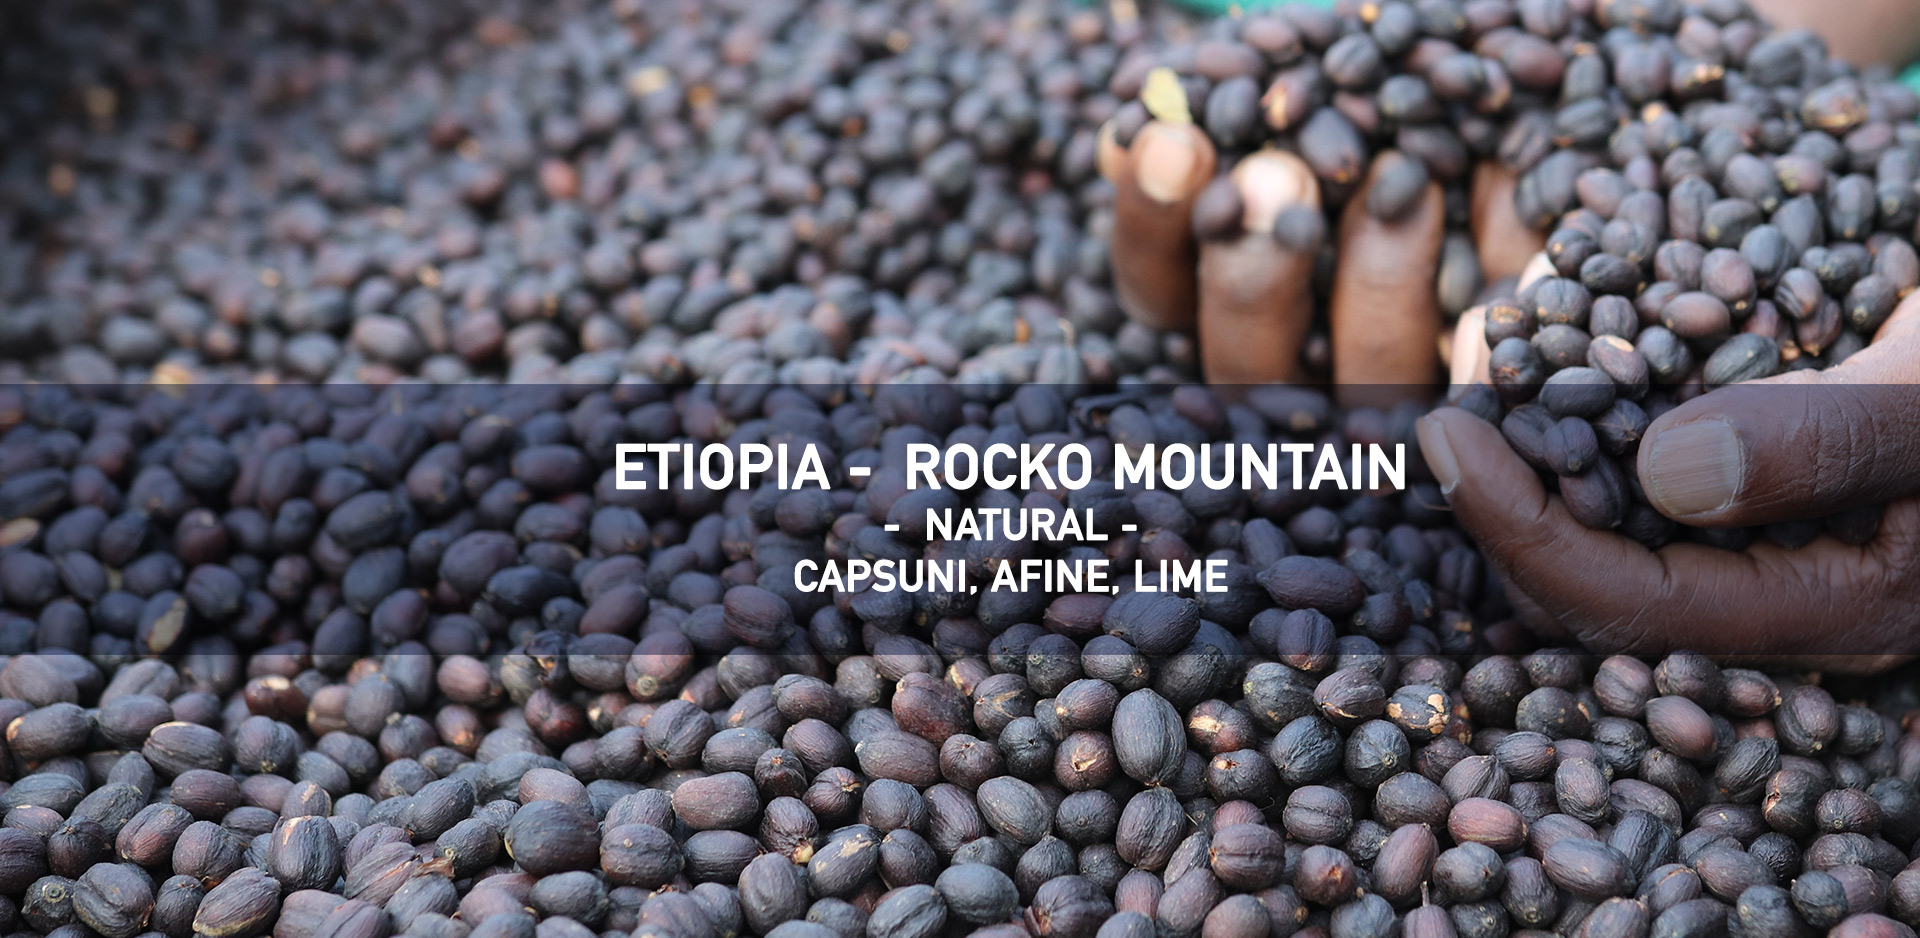 Etiopia Rocko Mountain